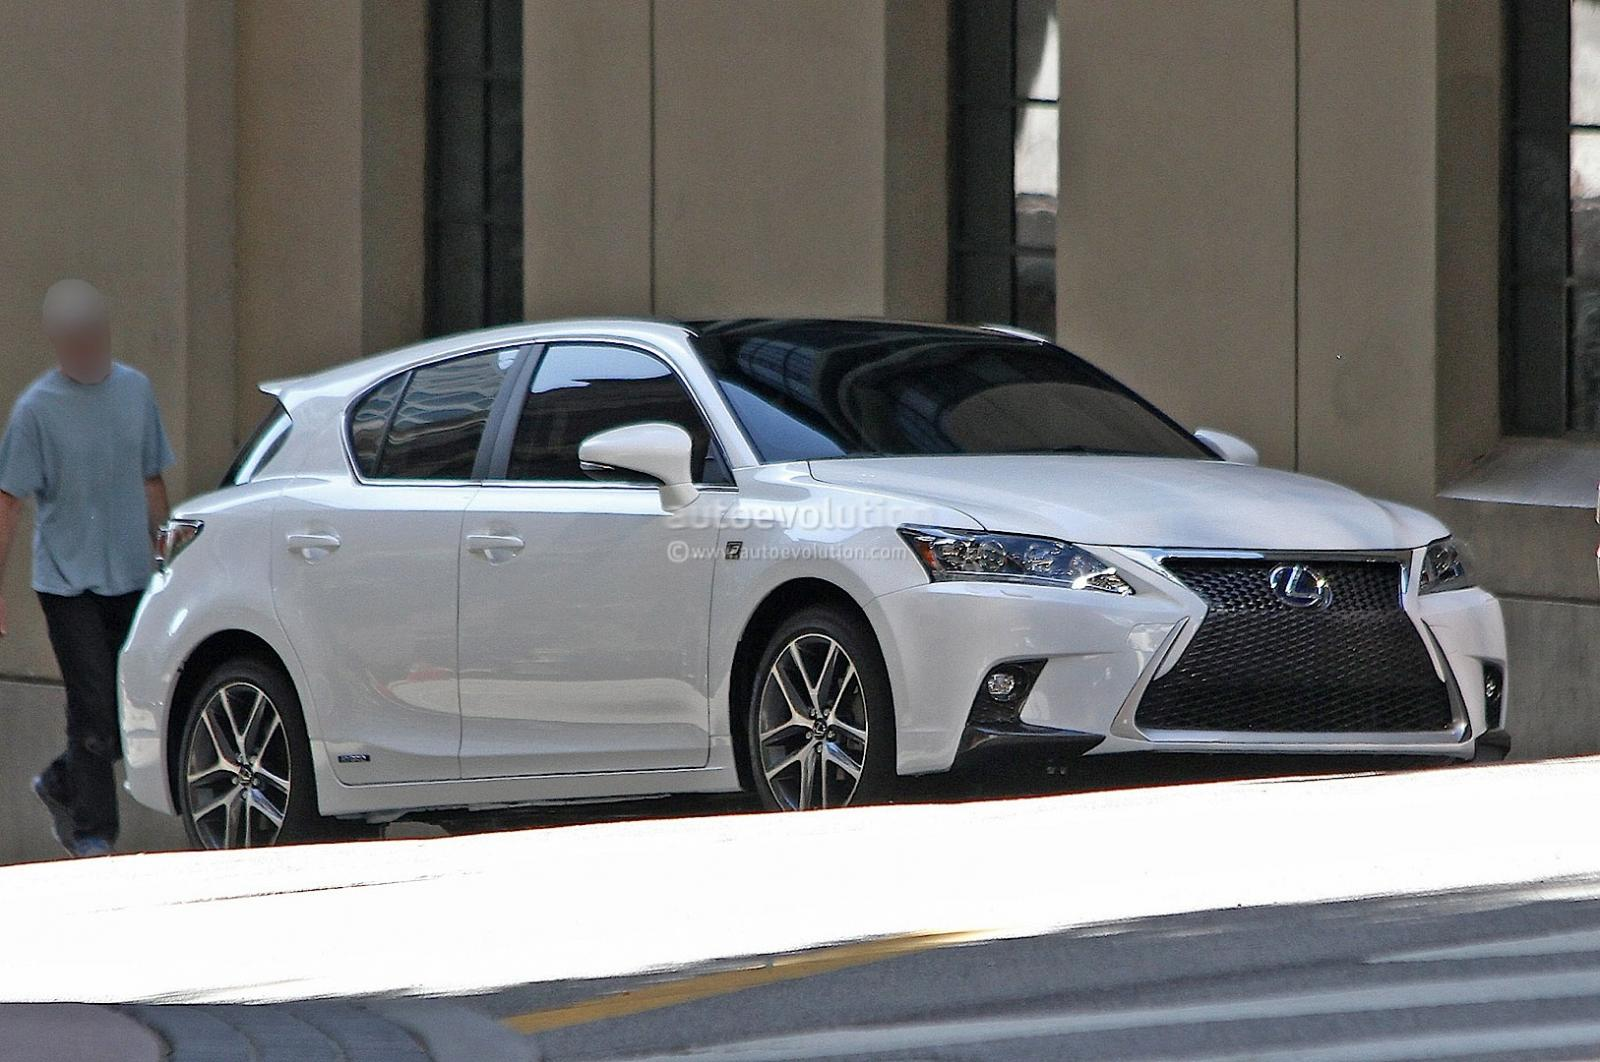 2015 lexus ct 200h information and photos zombiedrive rh zombdrive com 2012 ct200h owners manual 2012 ct200h owners manual